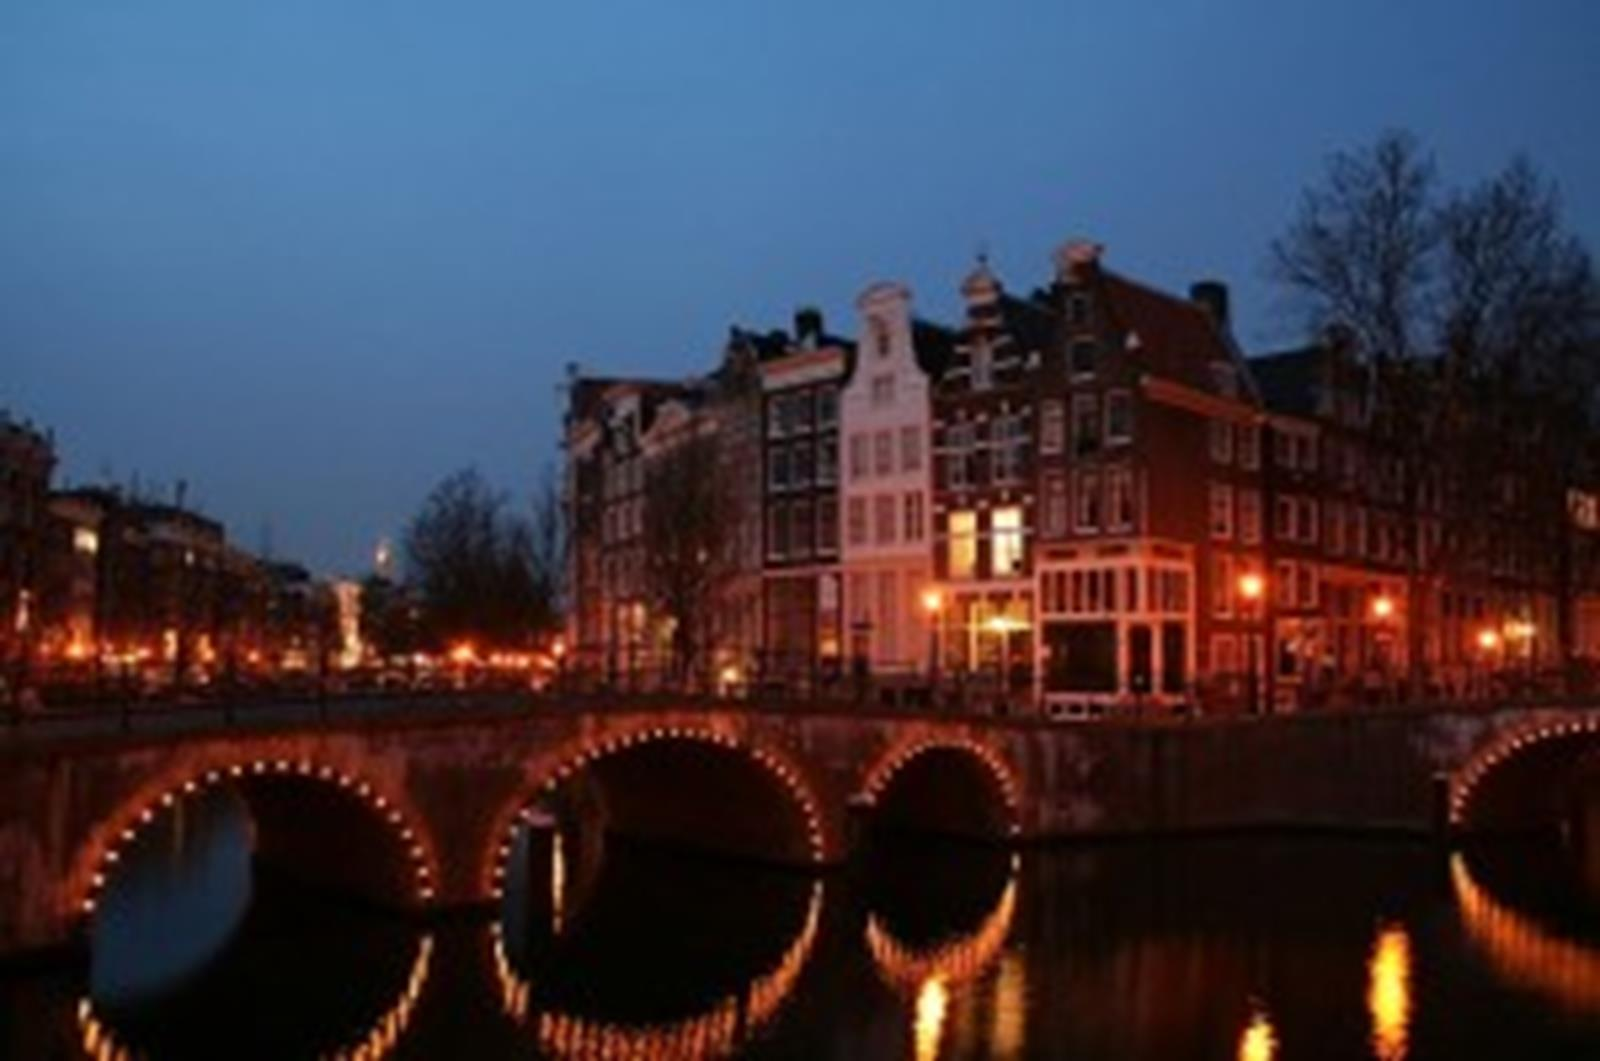 Keizersgracht in Amsterdam at night